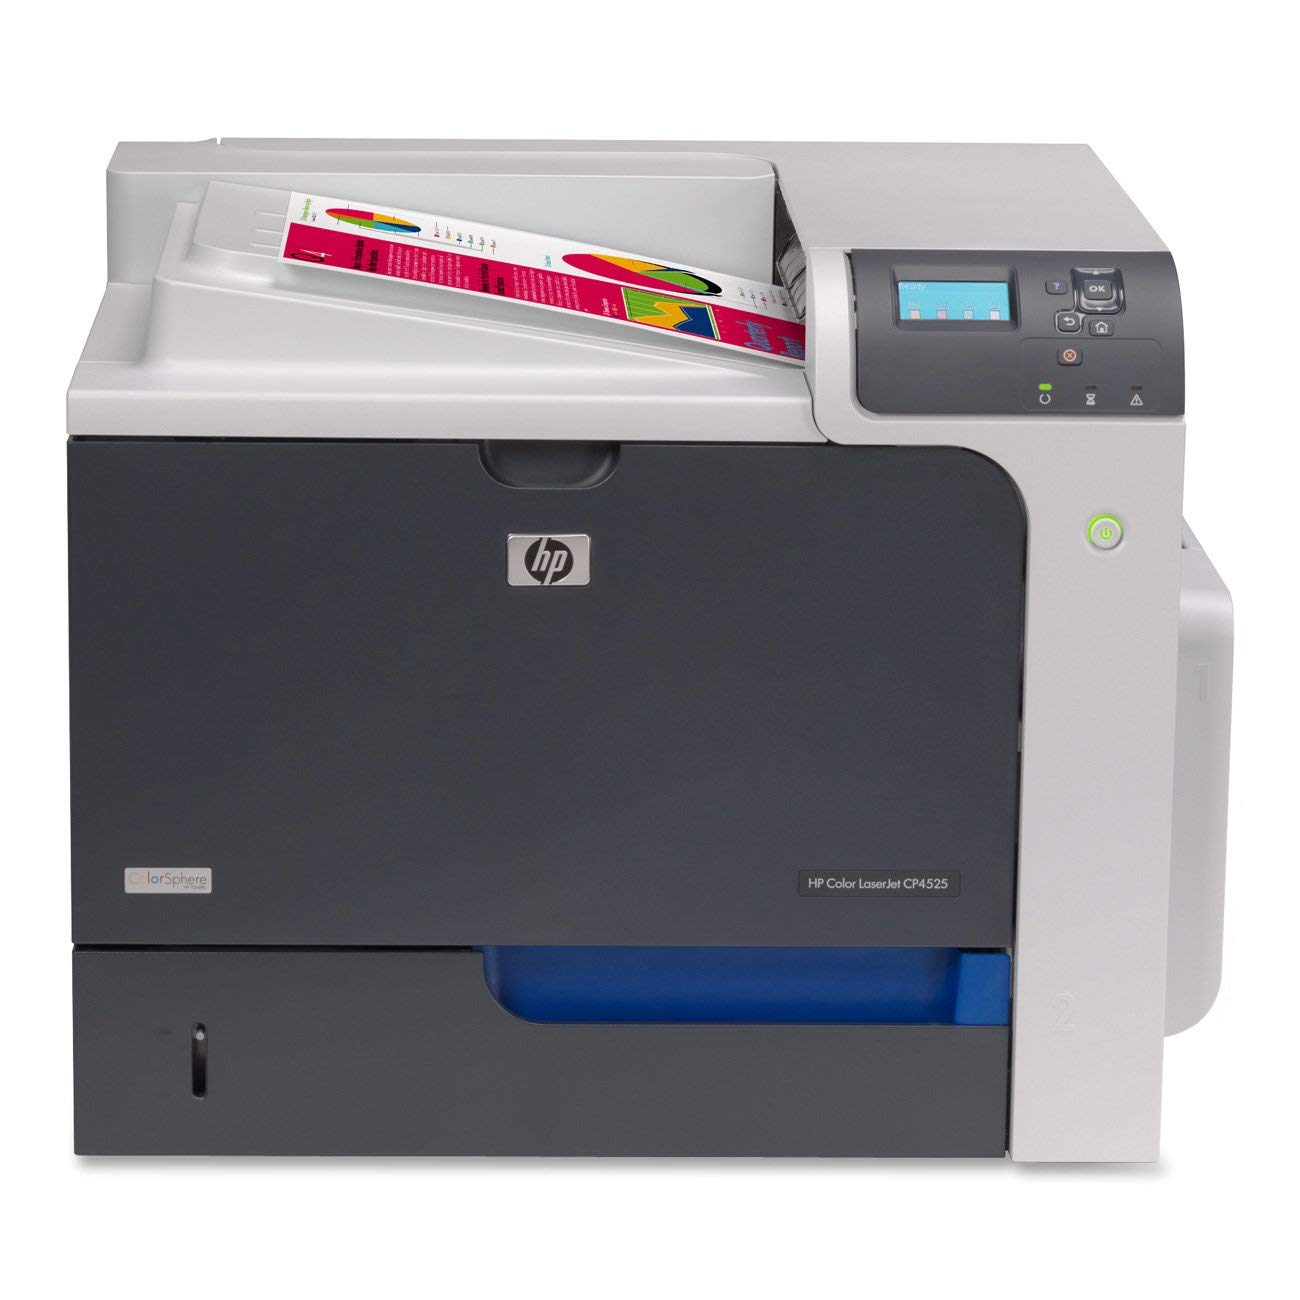 We Specialize on HP Laserjet Cp4025 and Cp4525 Printer with All 13 Paper  Jam Numerical Error Code Repairs!